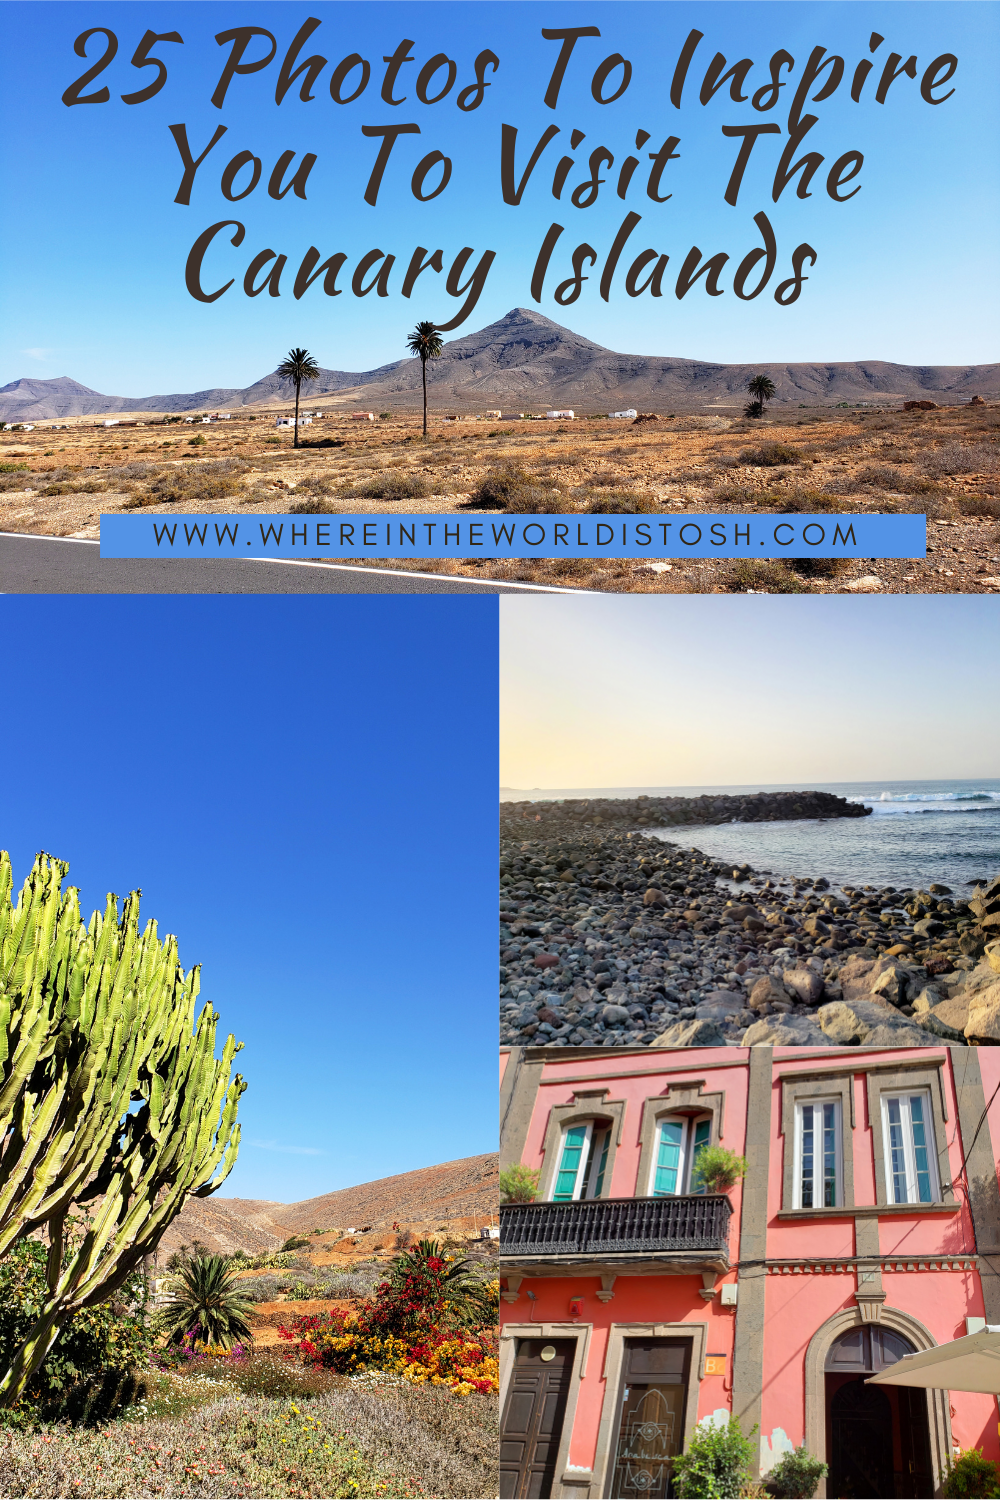 25 Photos To Inspire You To Visit The Canary Islands